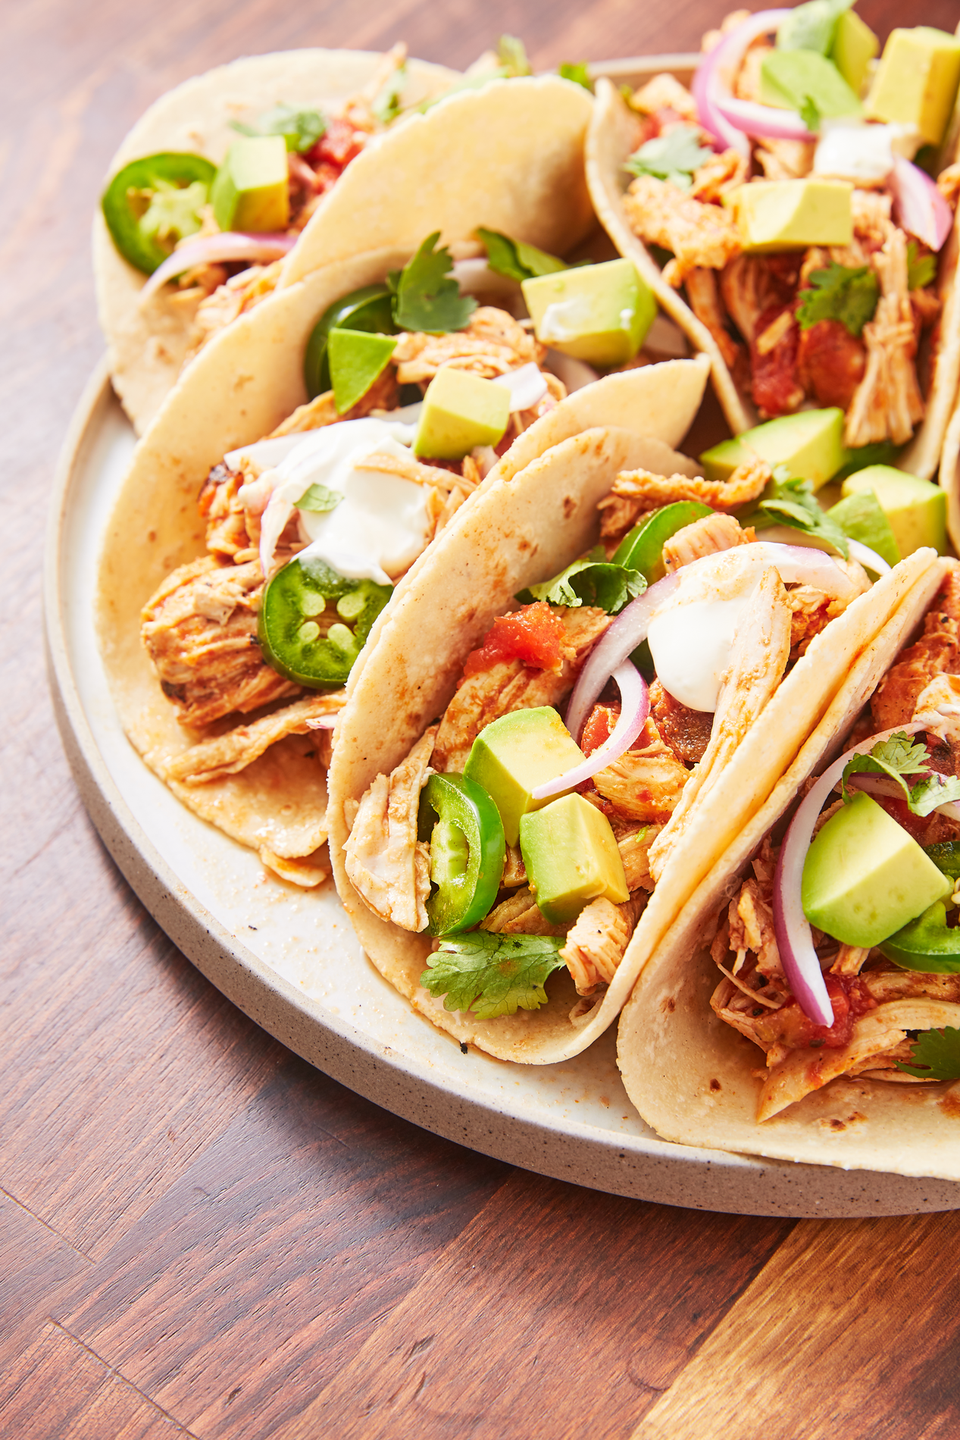 "<p>If we knew the Instant Pot could turn out delicious, juicy chicken taco filling, we would have bought one a lot sooner. </p><p>Get the recipe from <a href=""https://www.delish.com/cooking/recipe-ideas/a27044360/instant-pot-chicken-tacos-recipe/"" rel=""nofollow noopener"" target=""_blank"" data-ylk=""slk:Delish"" class=""link rapid-noclick-resp"">Delish</a>.</p>"